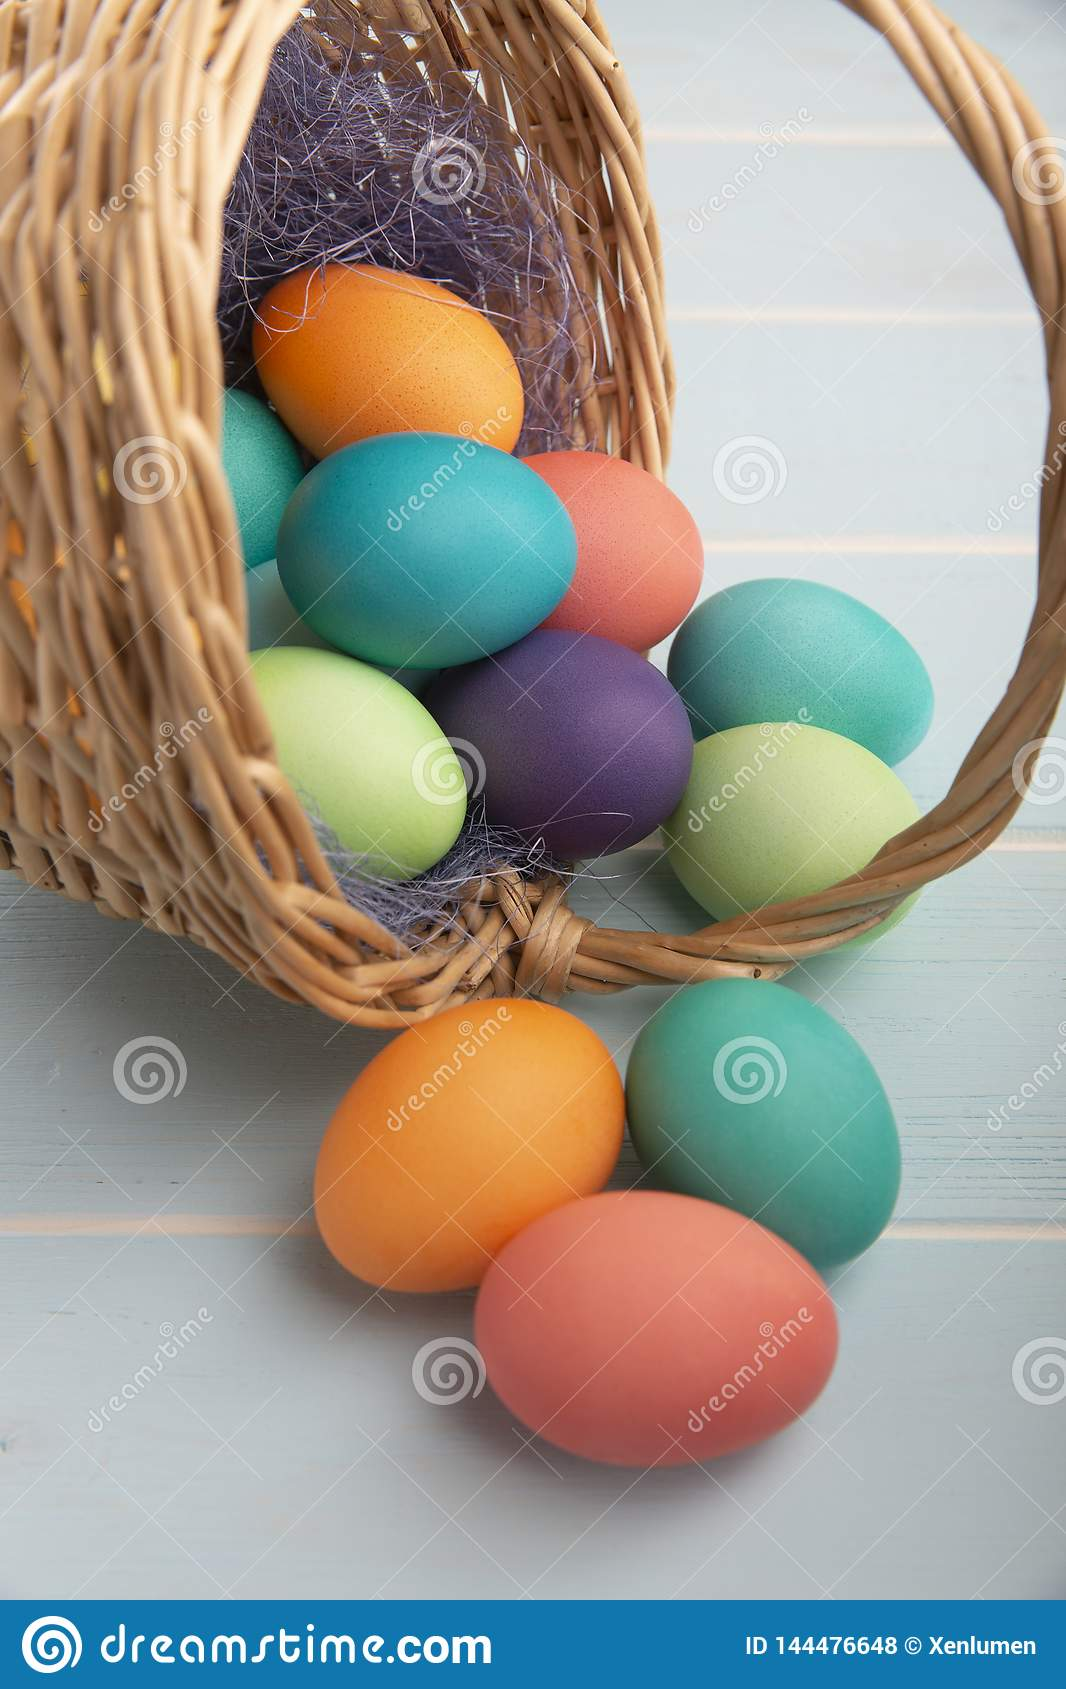 Mix of dyed bright Easter eggs in a withe basket with colorful blue sisal  on a wooden blue surface